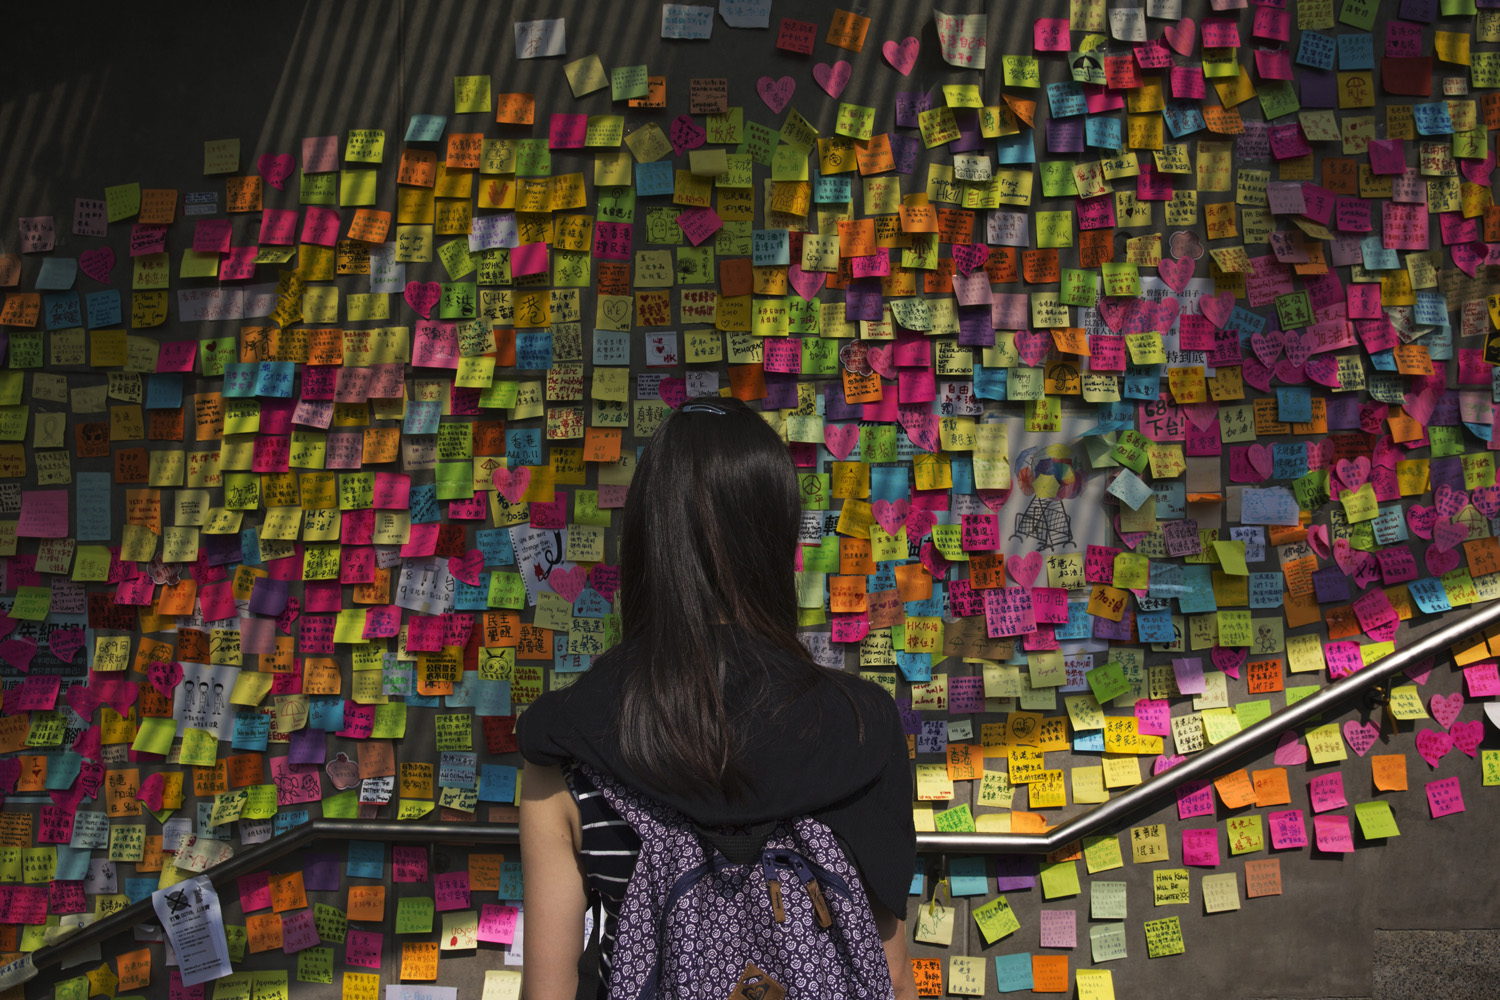 On a wall just outside Hong Kong government offices, protesters leave words of support for one another and demands for political action.